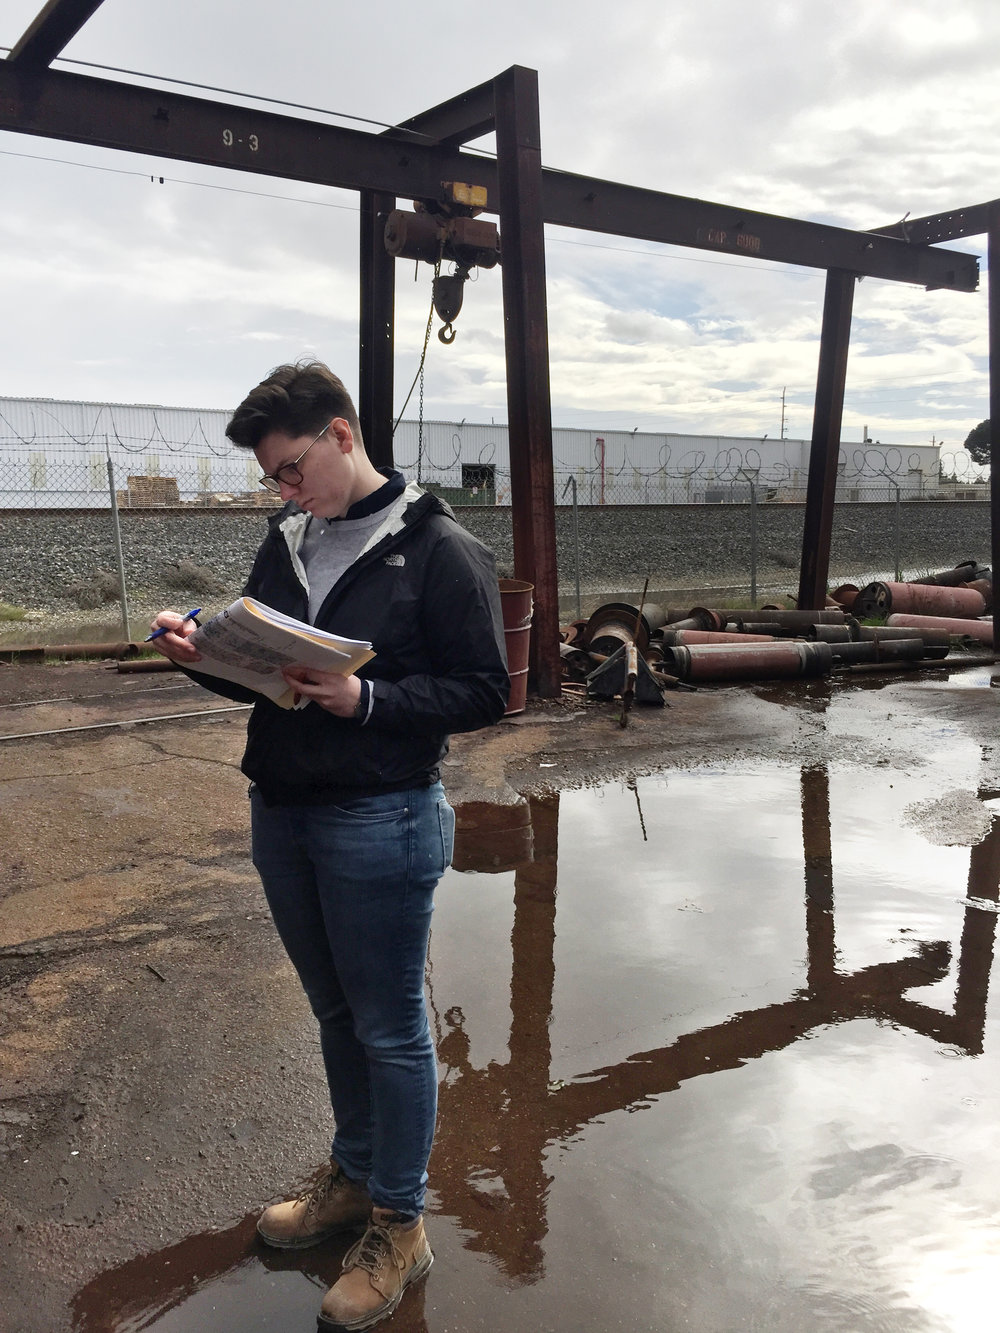 Project Engineer Jake Less studies the facility's site map during discussion with client regarding sampling points.